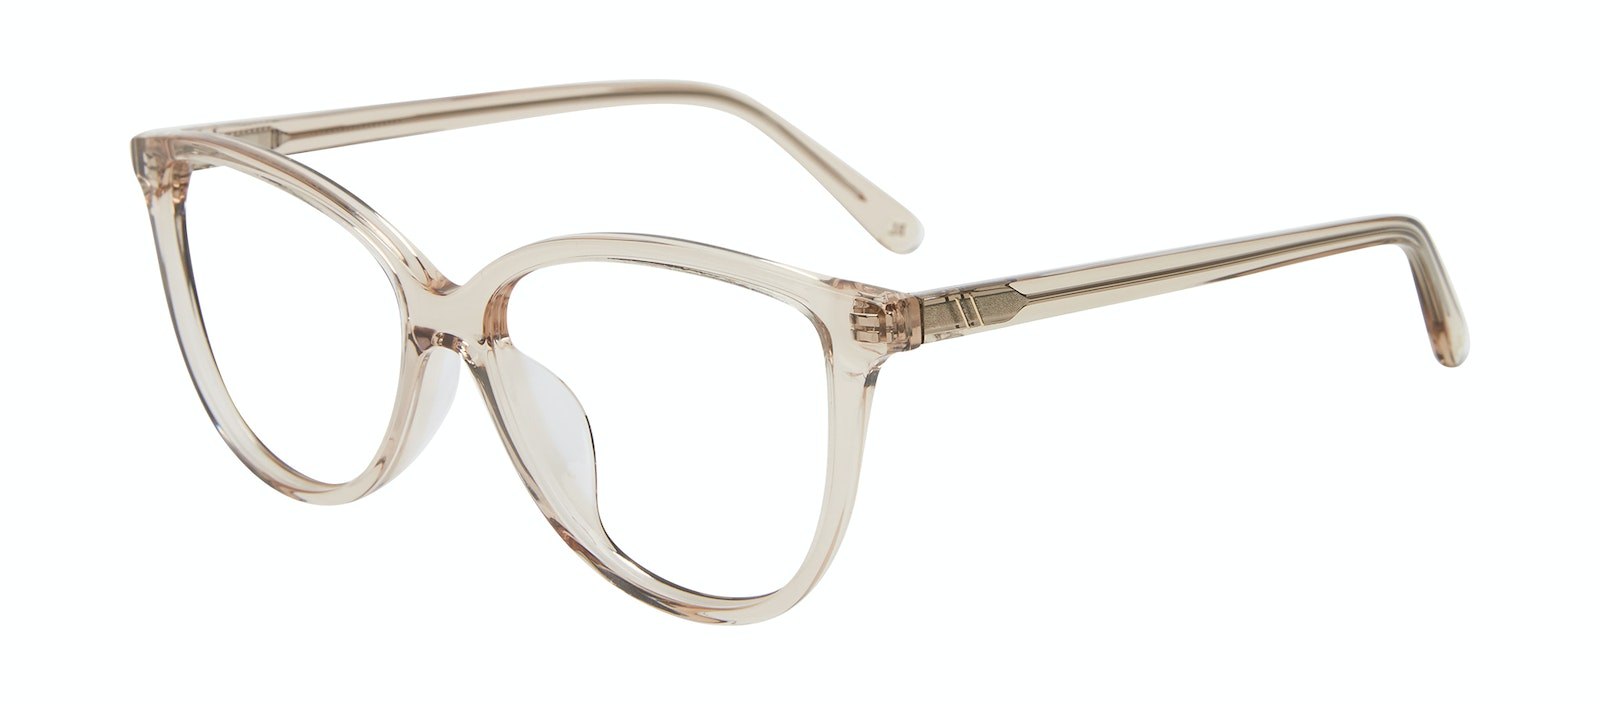 Affordable Fashion Glasses Cat Eye Eyeglasses Women Tailor Blond Tilt